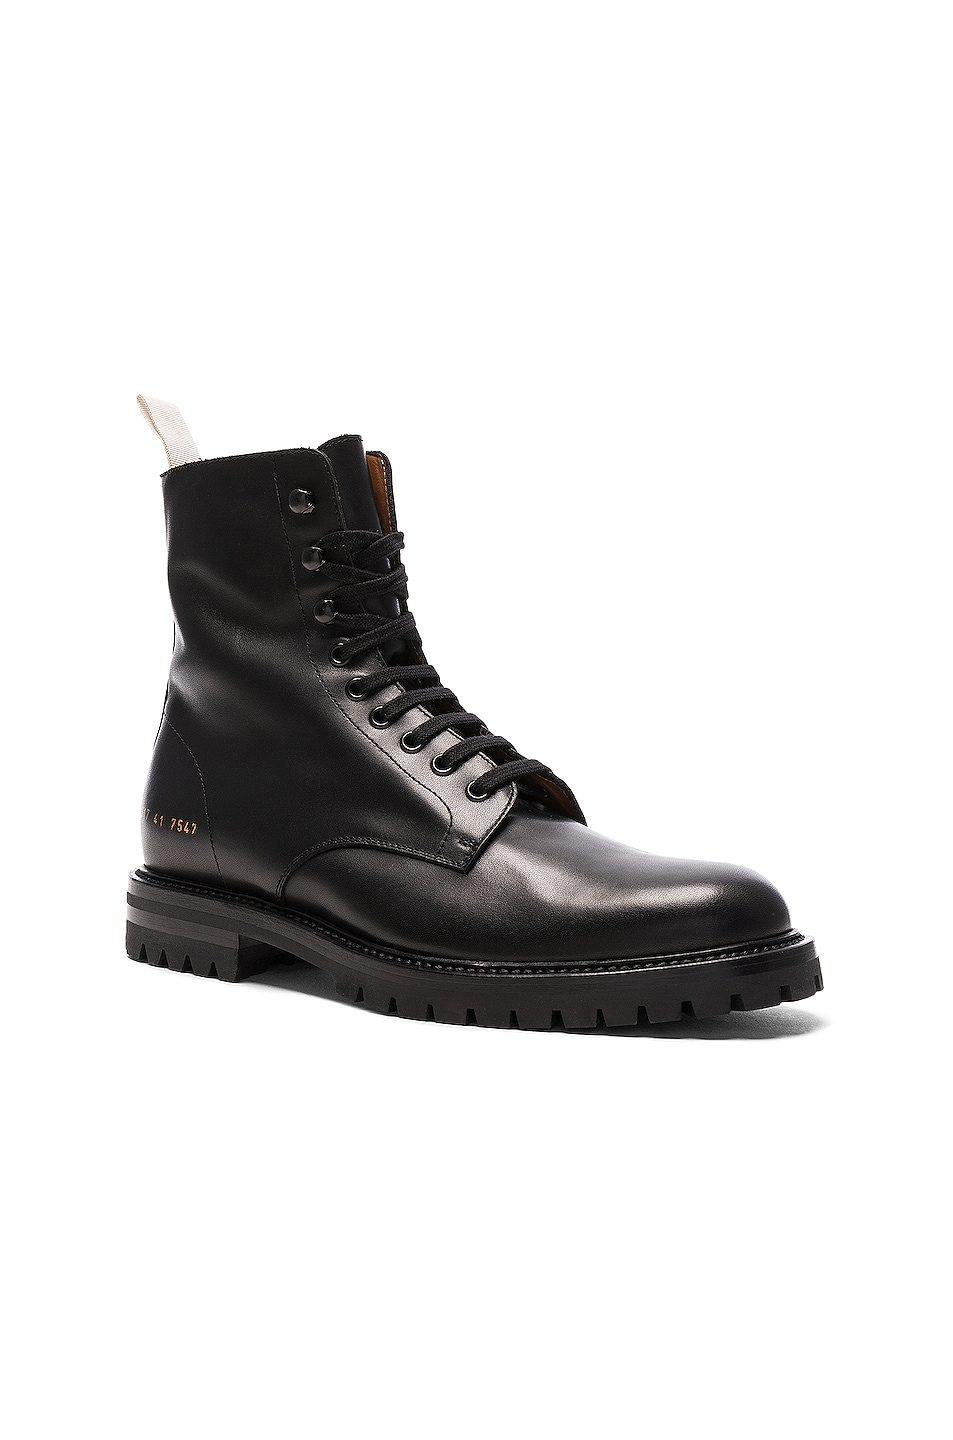 9bdec7548461f Image 2 of Common Projects Leather Winter Combat Boots in Black